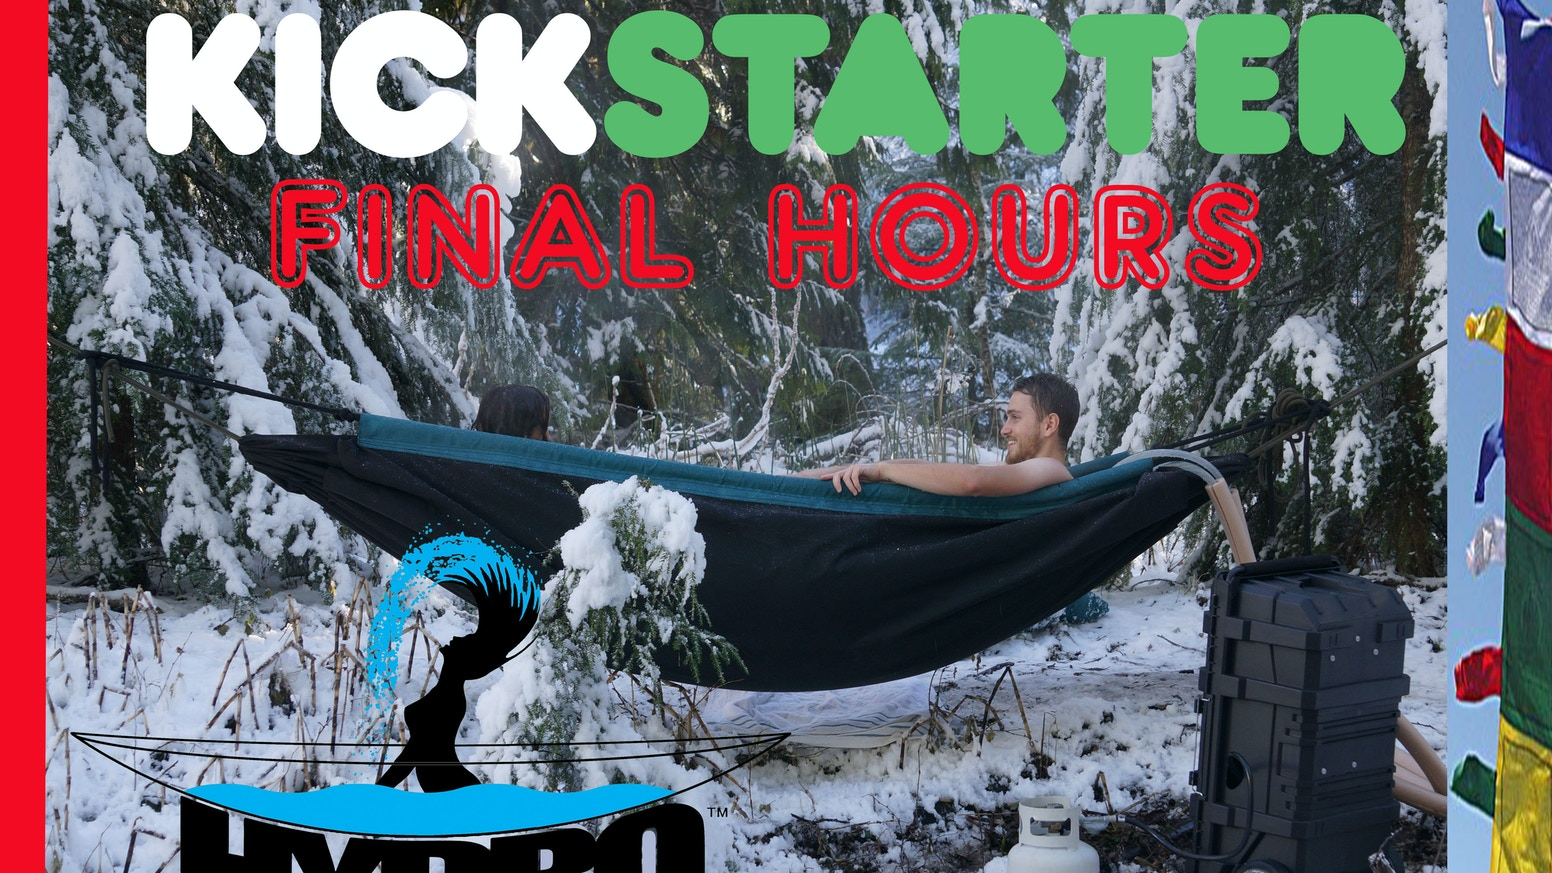 Hot Tub Hammock, yes a revolution. Suspended it, lay in the snow or